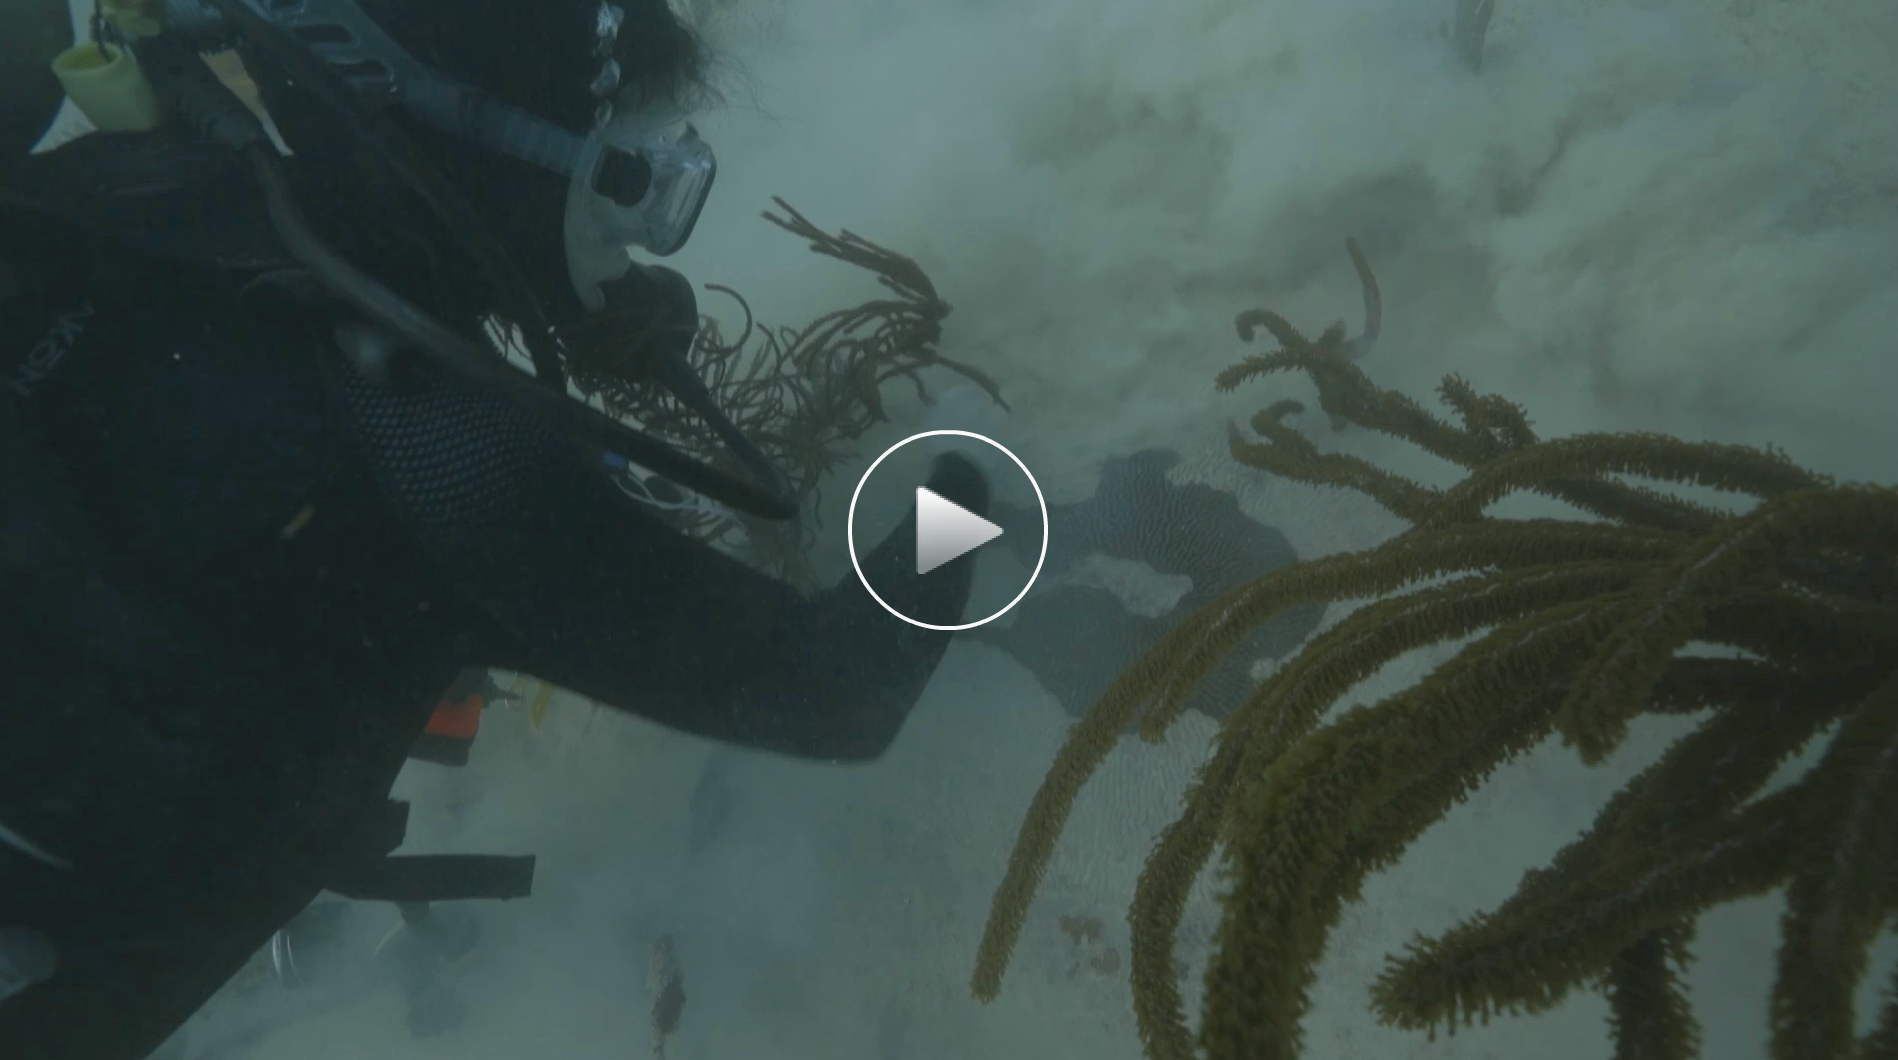 See how seaport dredging to help shipping is killing endangered coral in the waters near Miami.